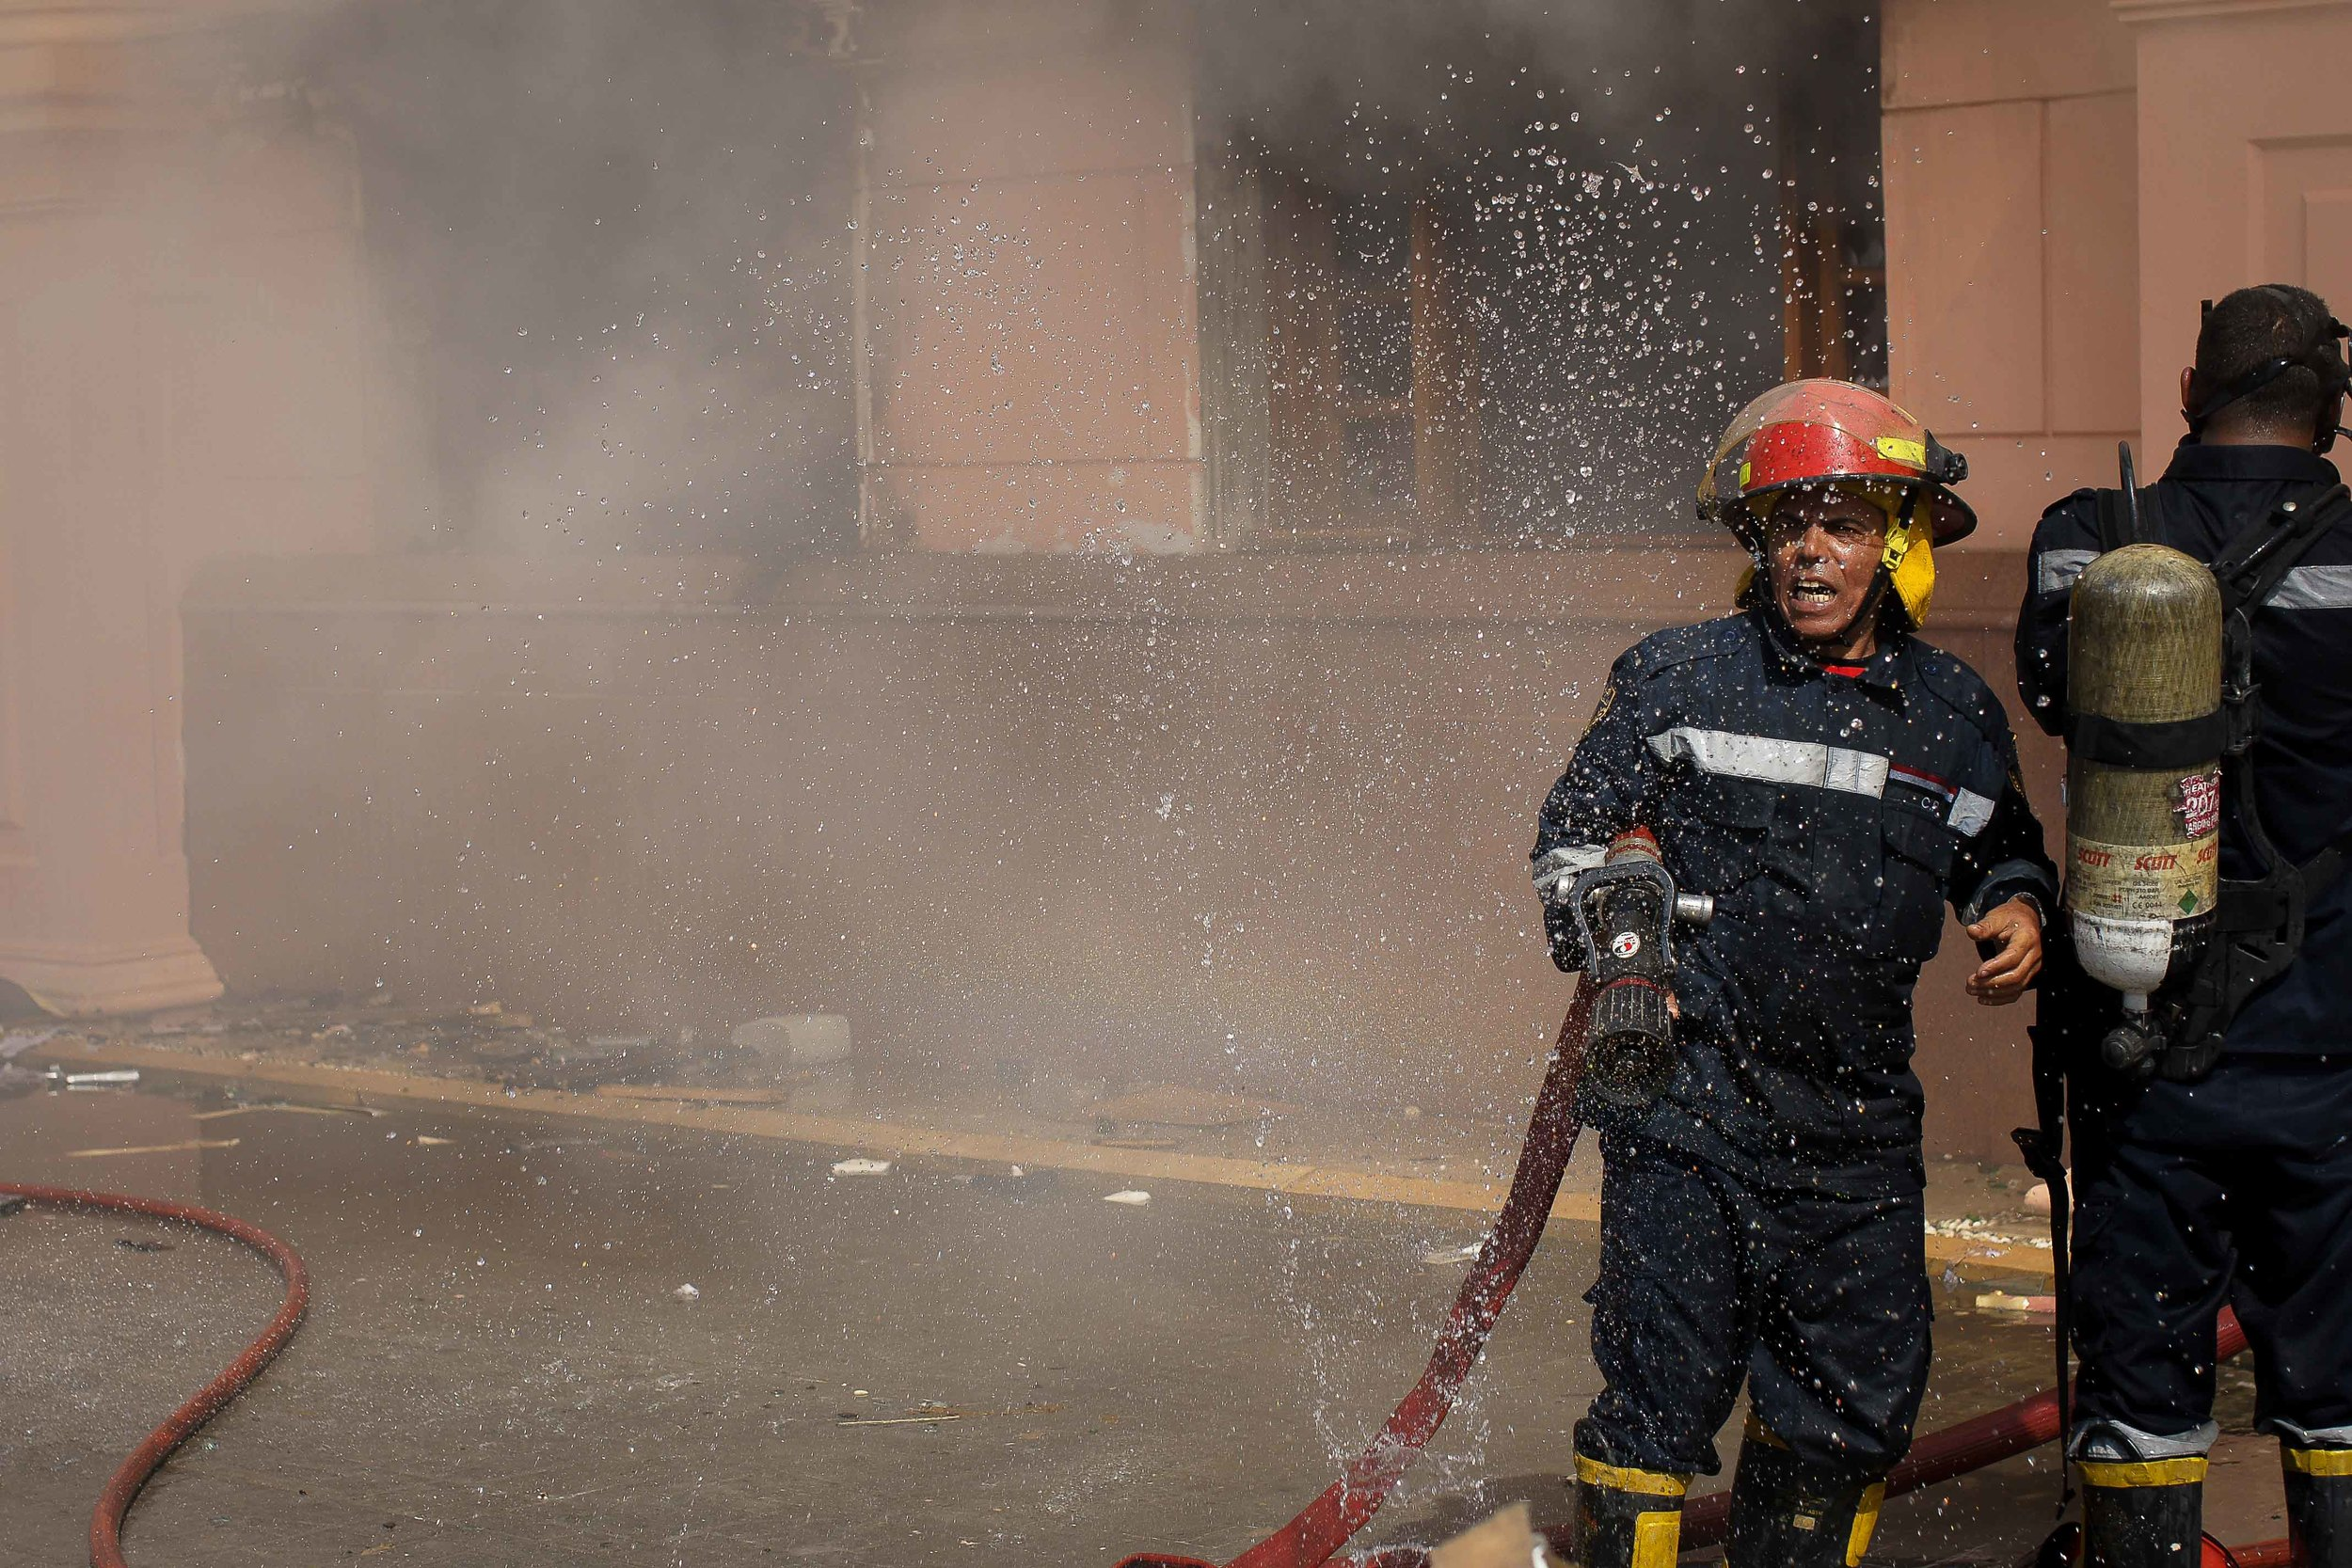 Efforts to extinguish the blaze were hampered by broken or leaking hoses. After about 45 minutes, the firefighters began to gain control over the fire.